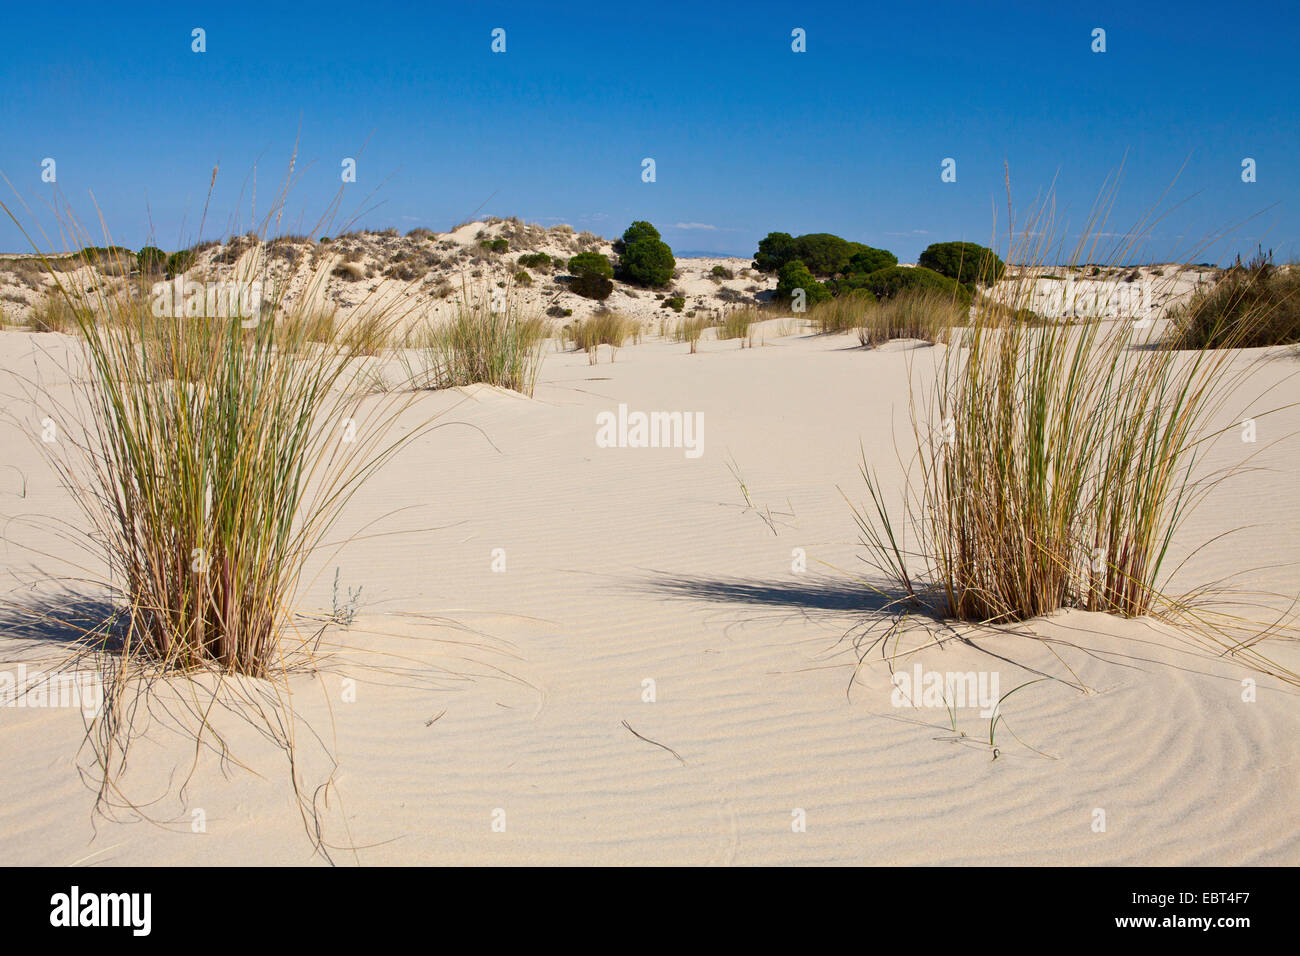 dunes in the National Park, Spain, Andalusia, Coto De Donana National Park Stock Photo